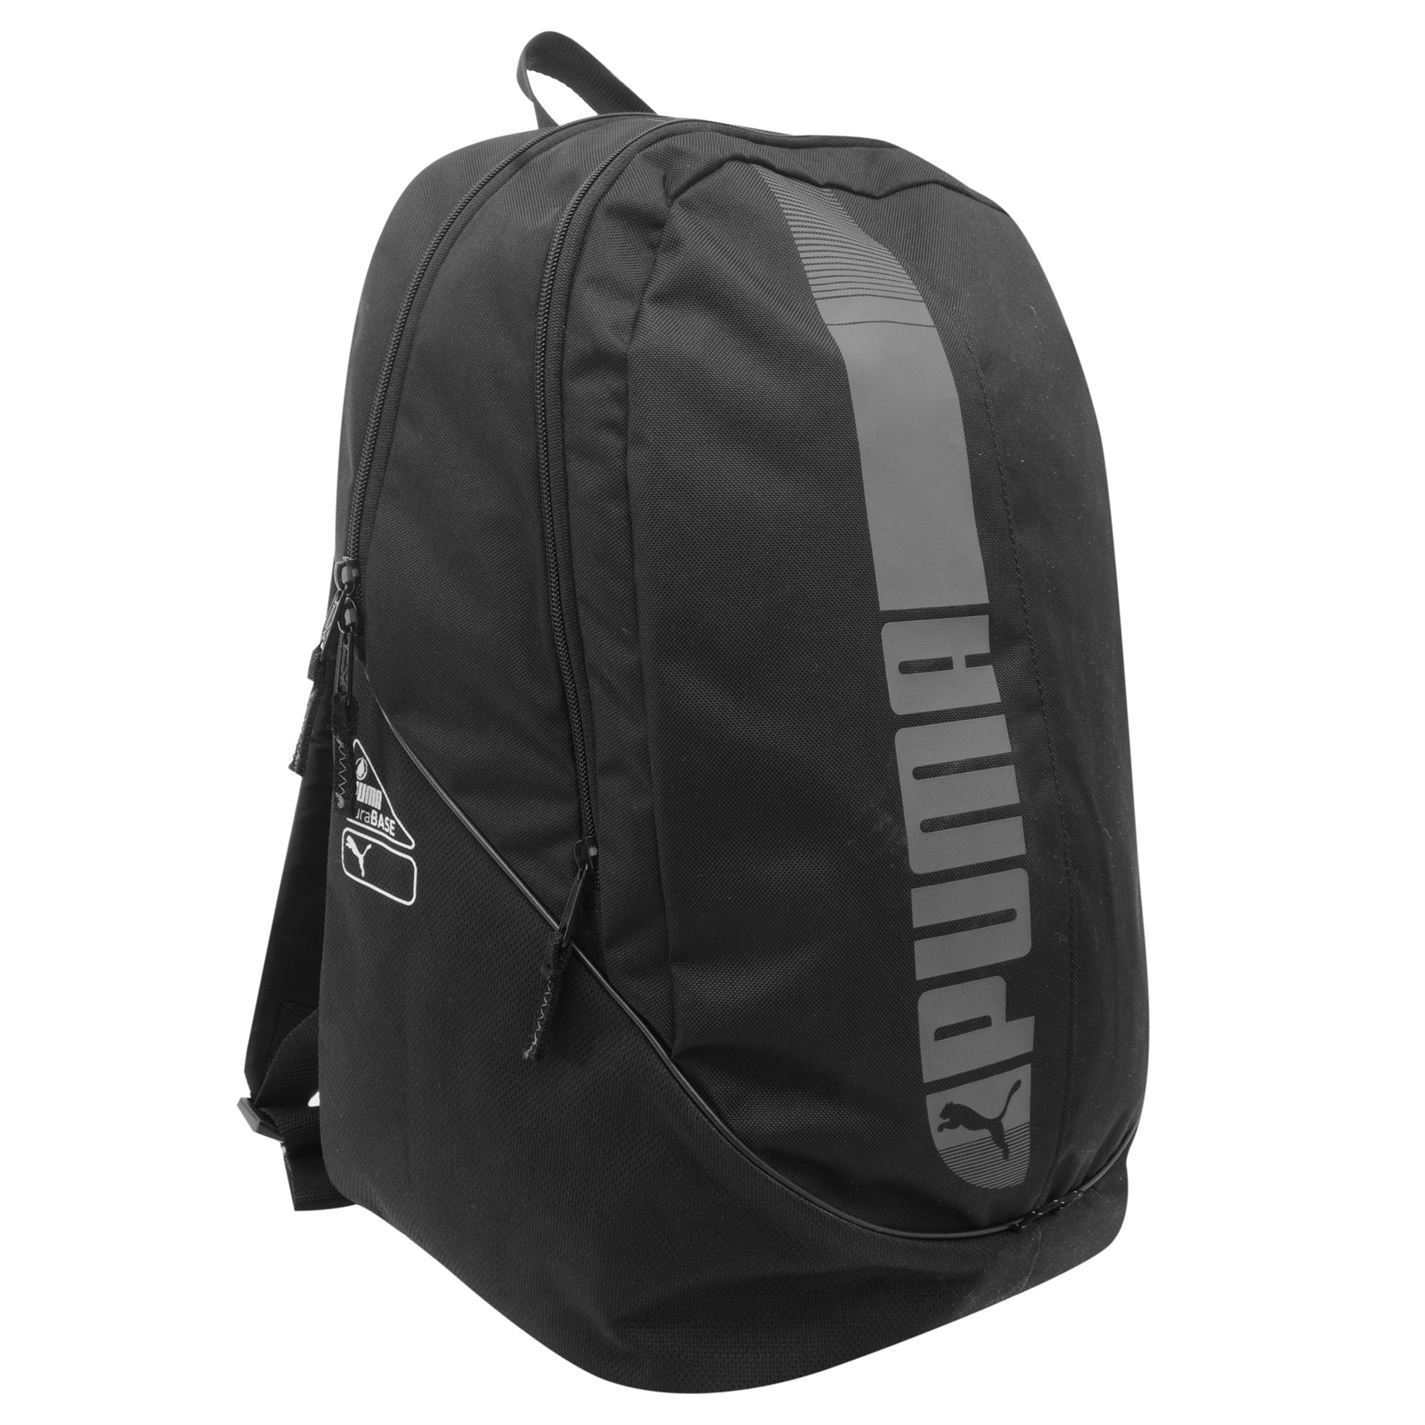 Details about Puma Pioneer Backpack Black Gym Sports Bag